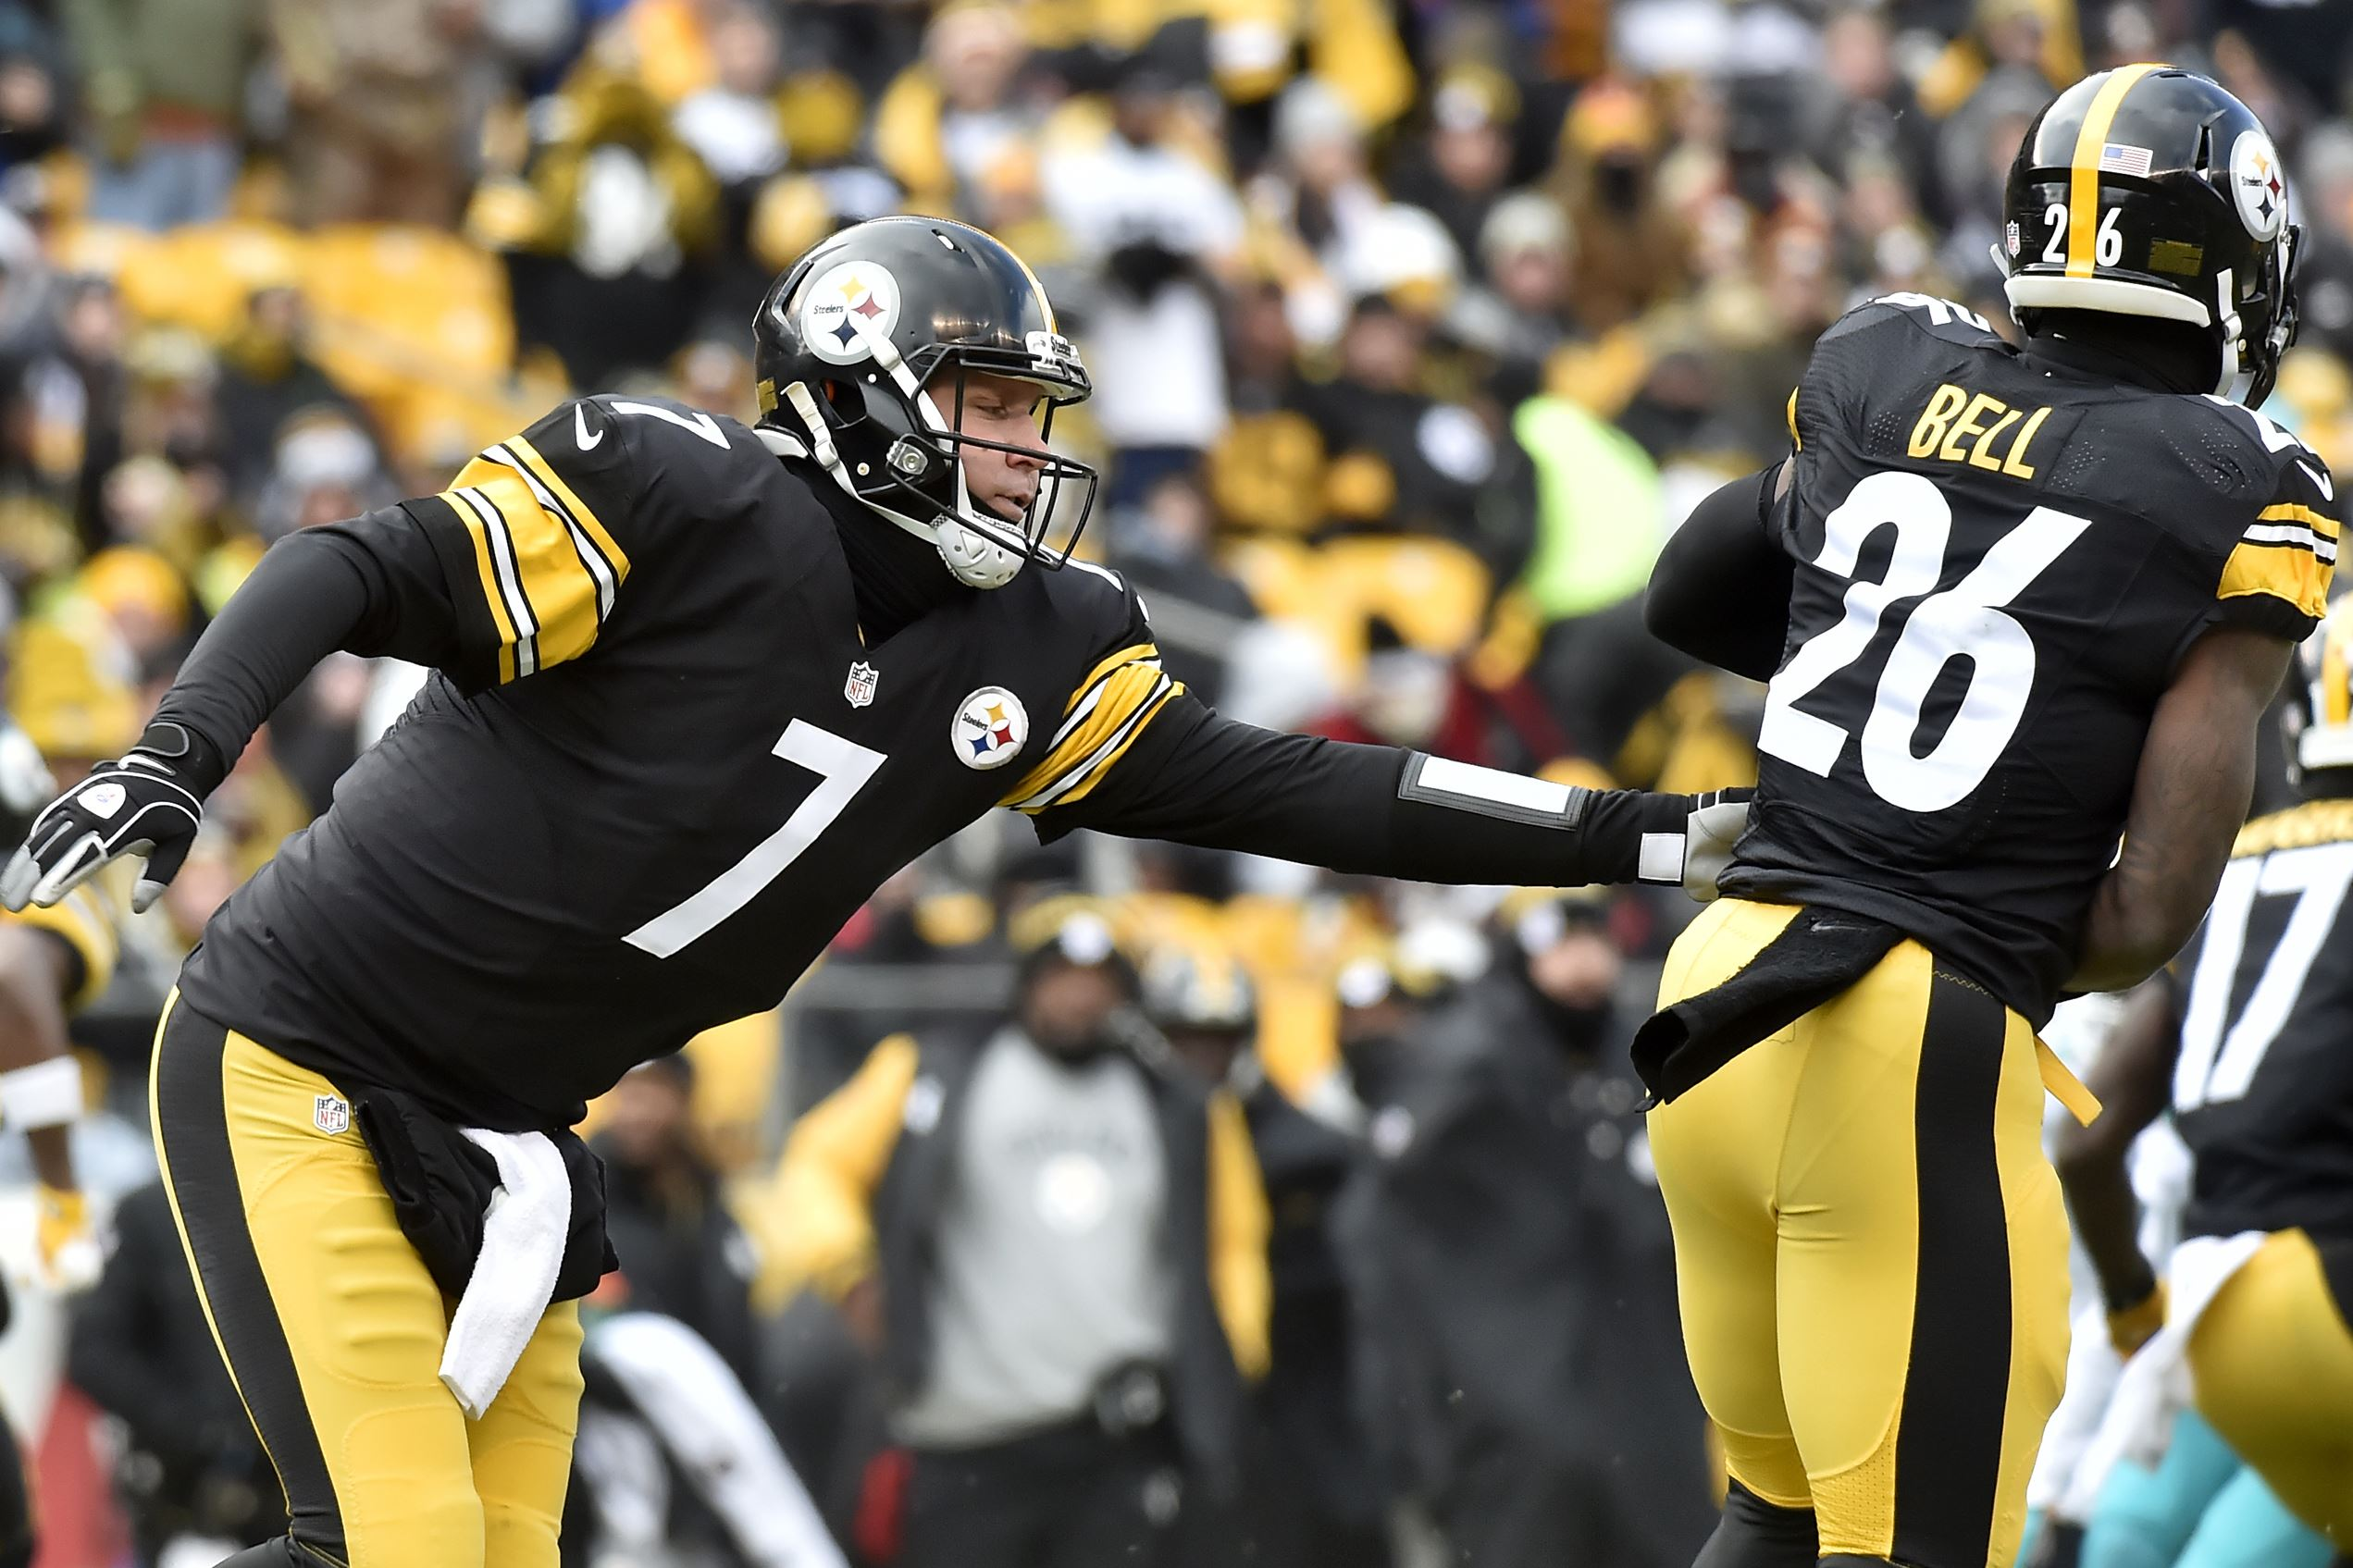 Pittsburgh Steelers vs. Kansas City Chiefs Start Time Moved